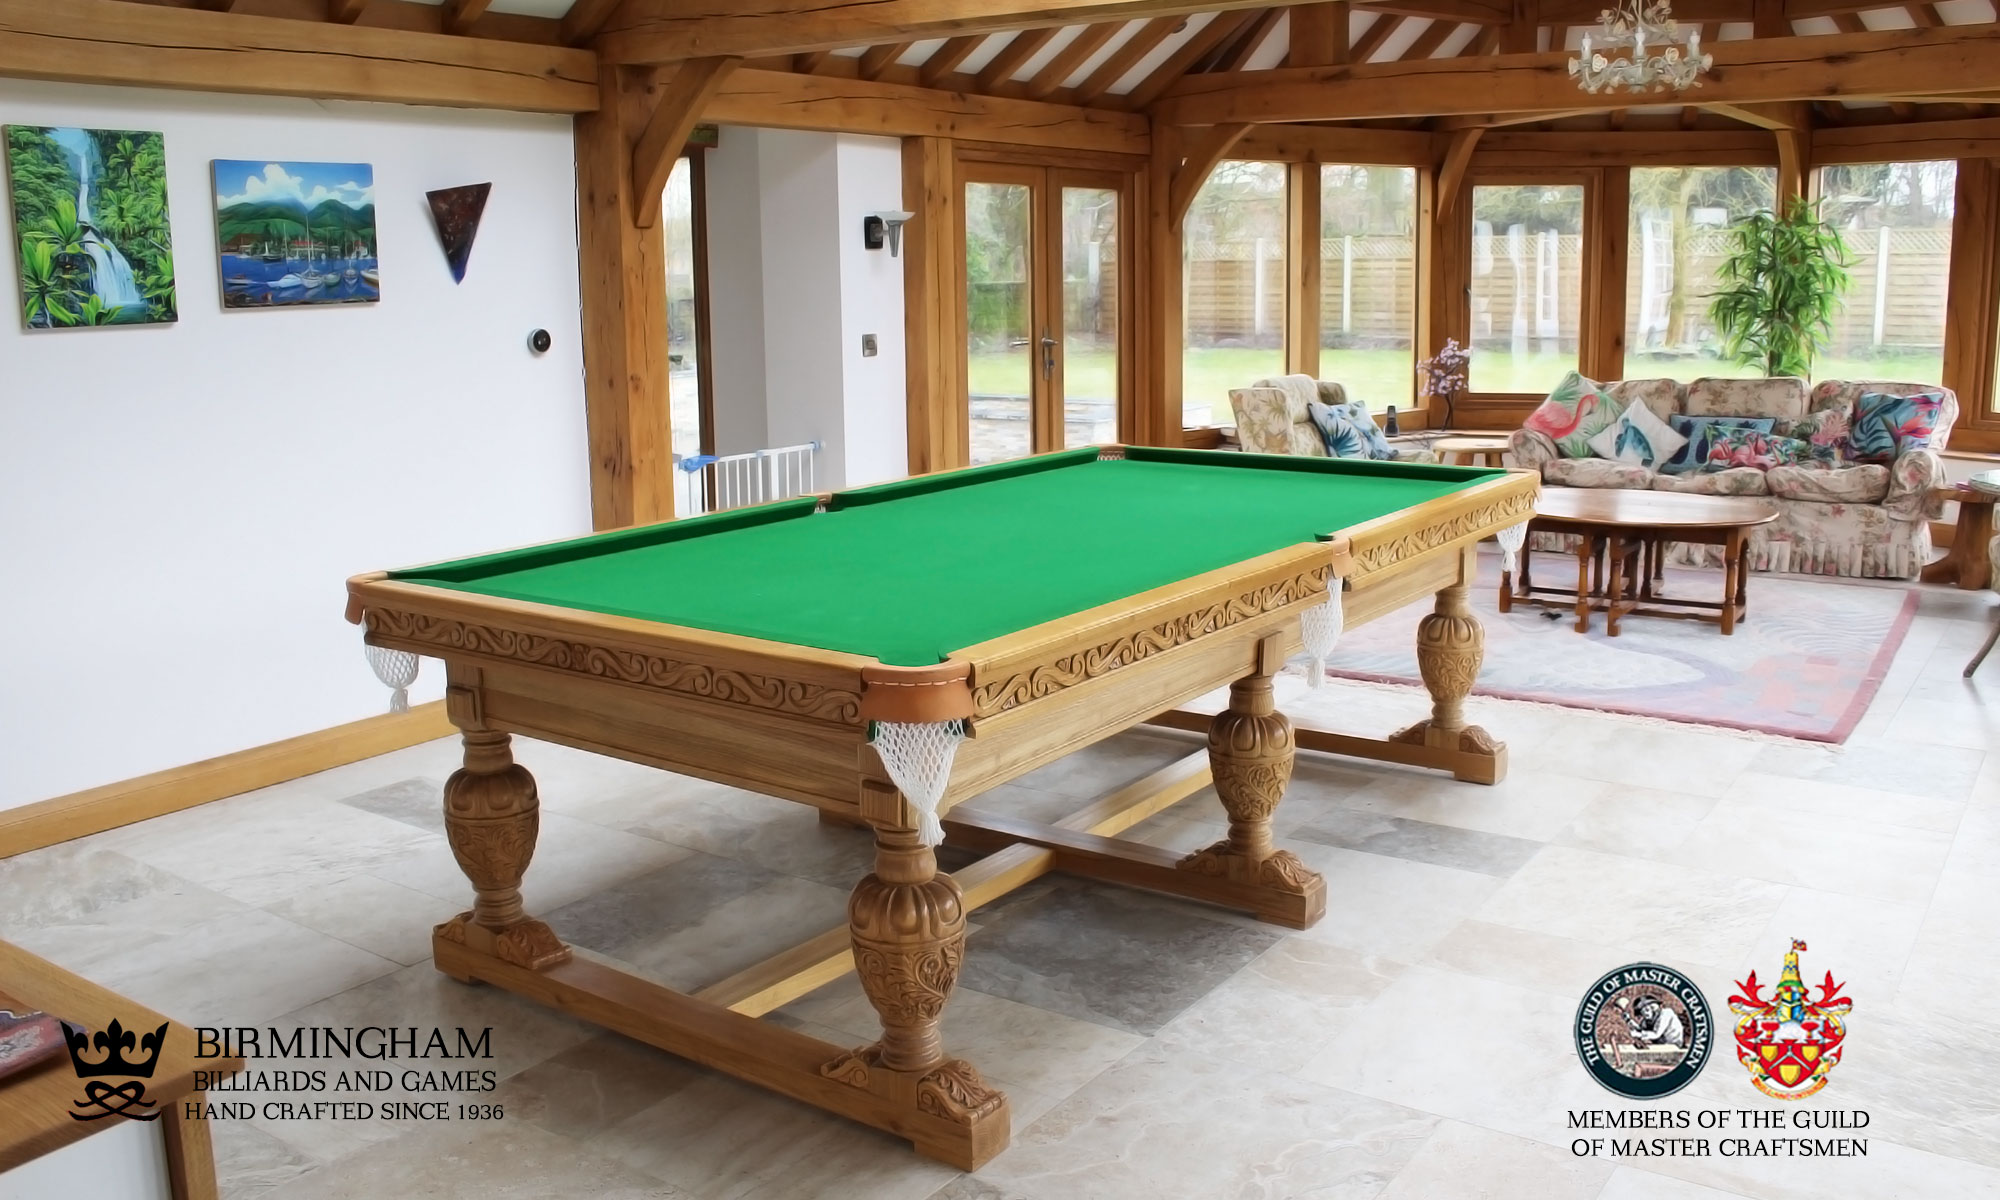 The Balmoral-hand carved pool table,6 legs, green baize